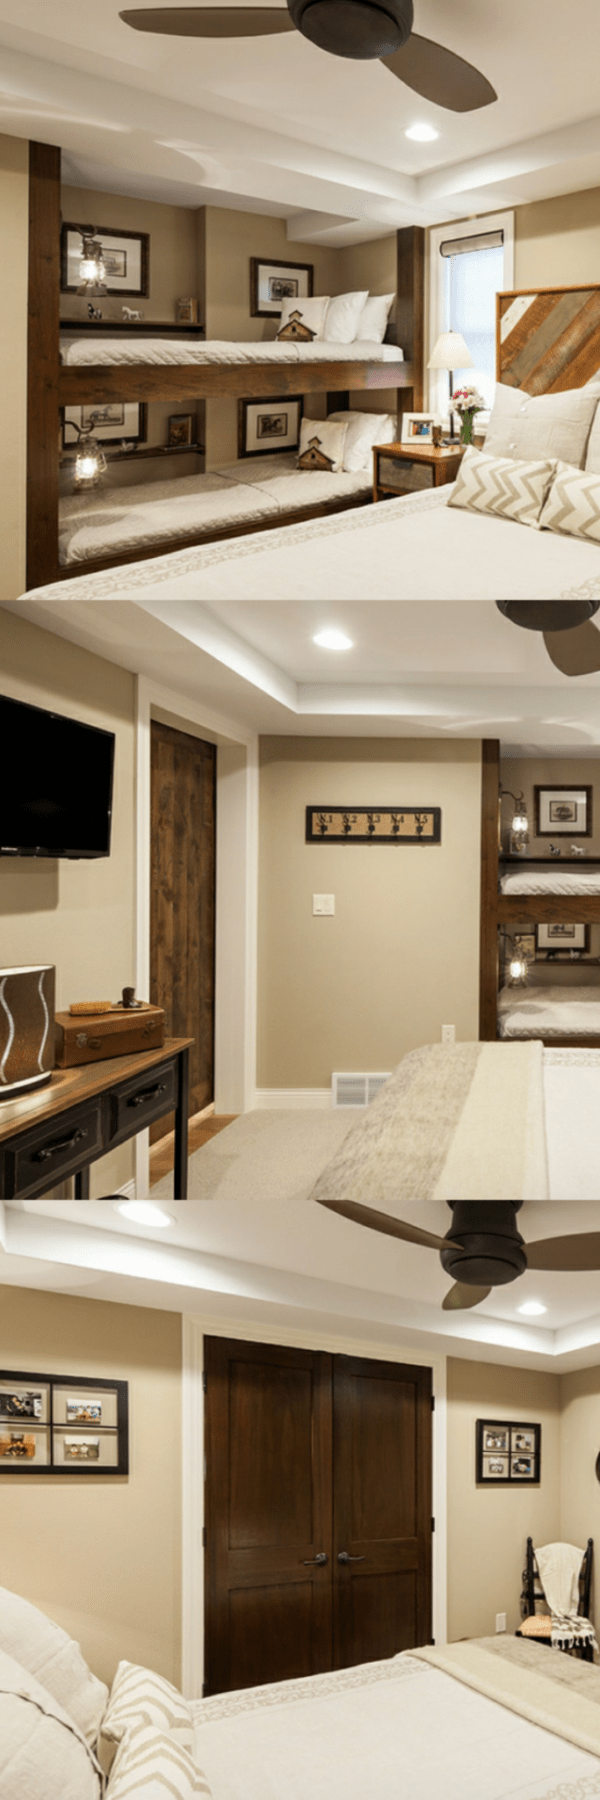 unfinished basement hangout ideas